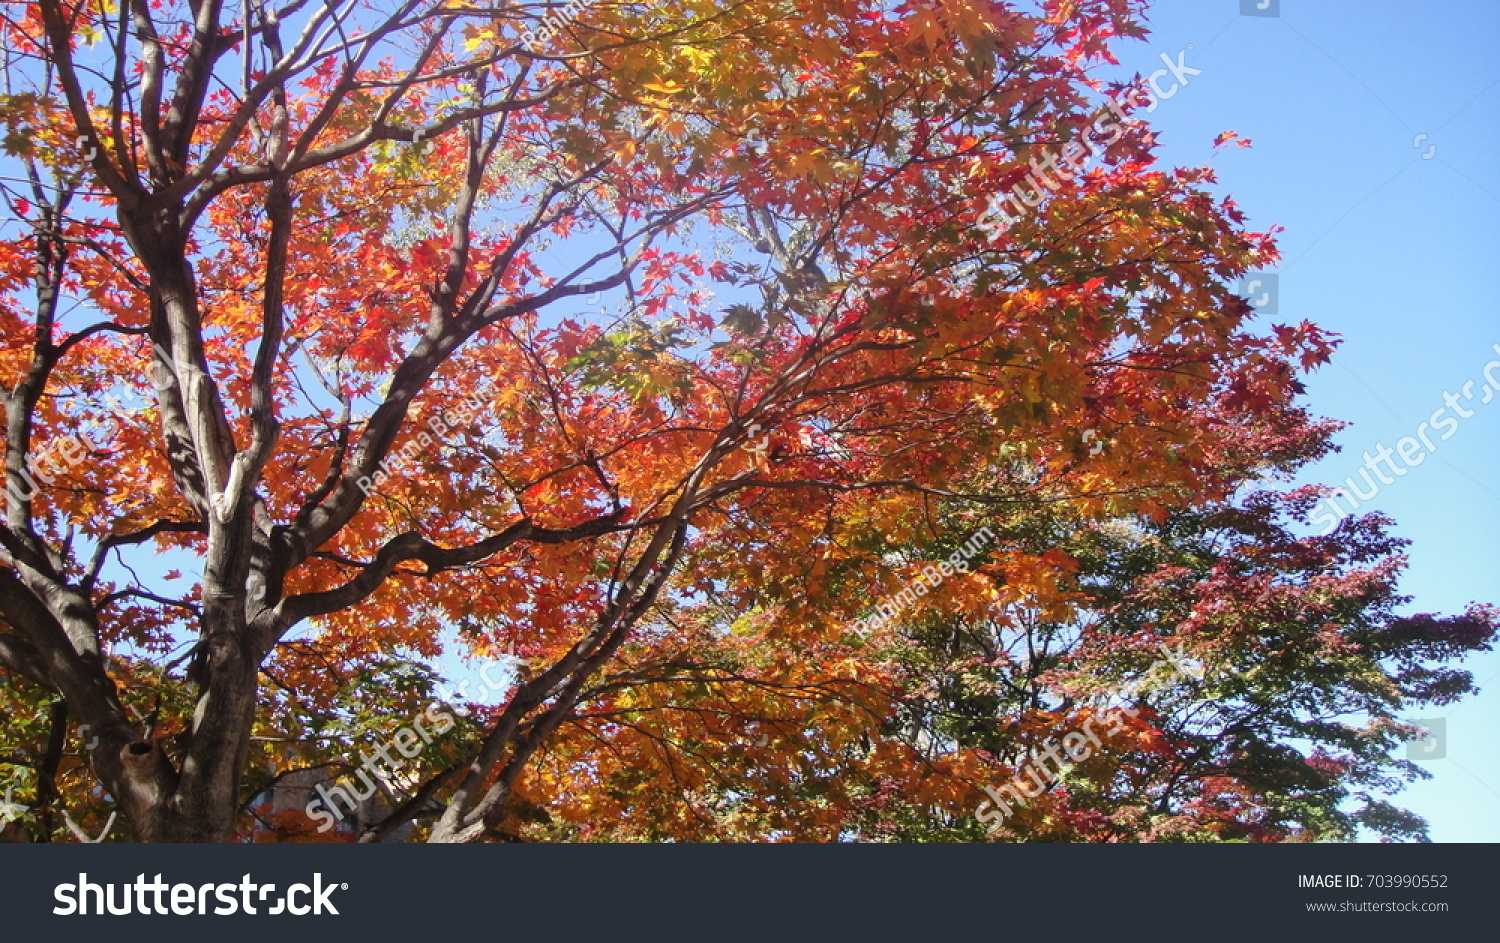 Colorful autumn leaves on blue sky background aat hokkaido university campus, ,japan , #703990552